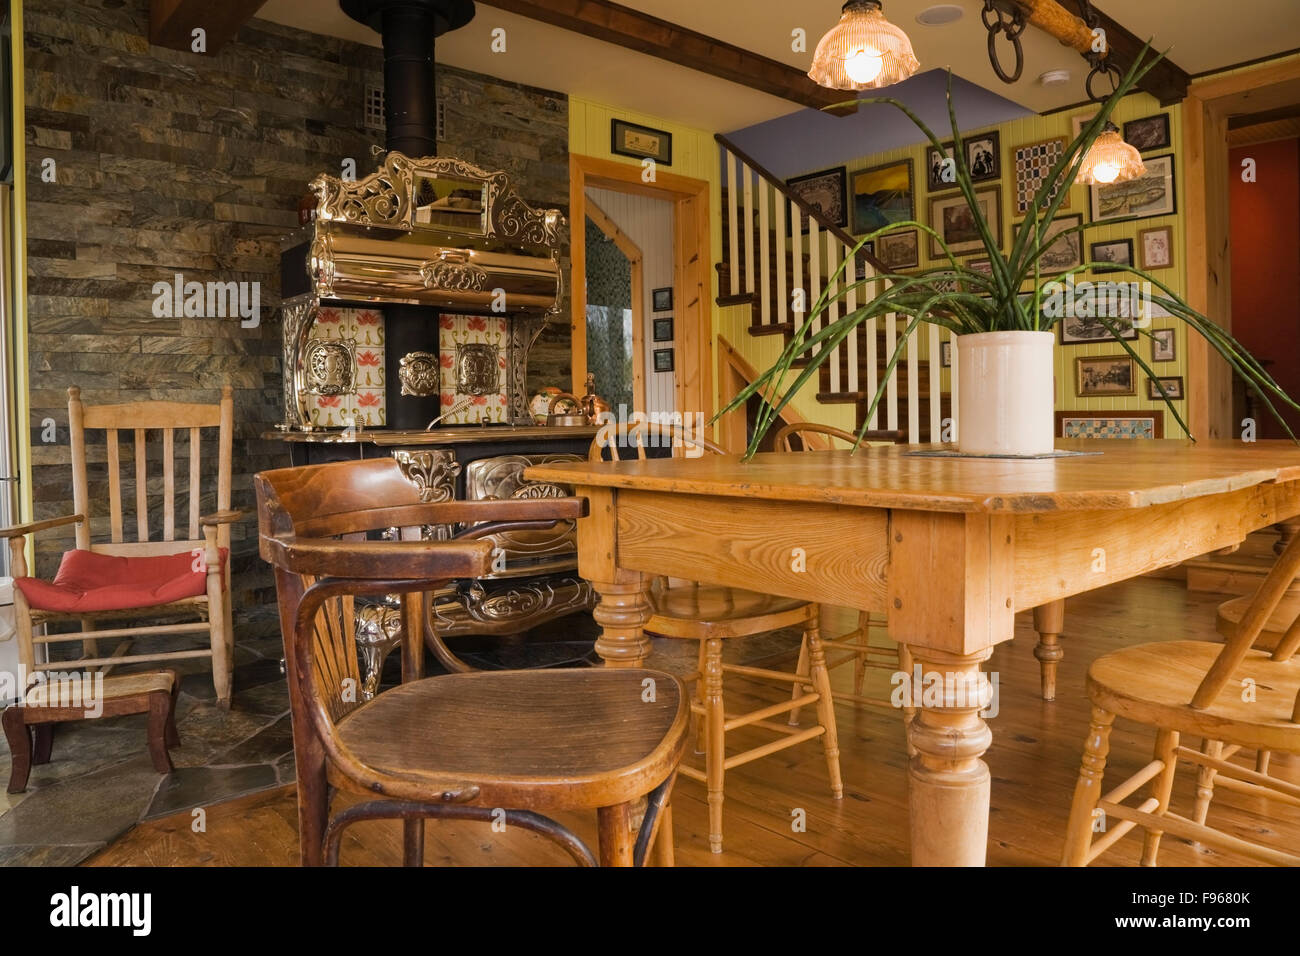 Wooden Dining Table With Chairs And An Old Wooden Rocking Chair Next To An  Antique Royal Model Wood Cooking Stove In The Dining